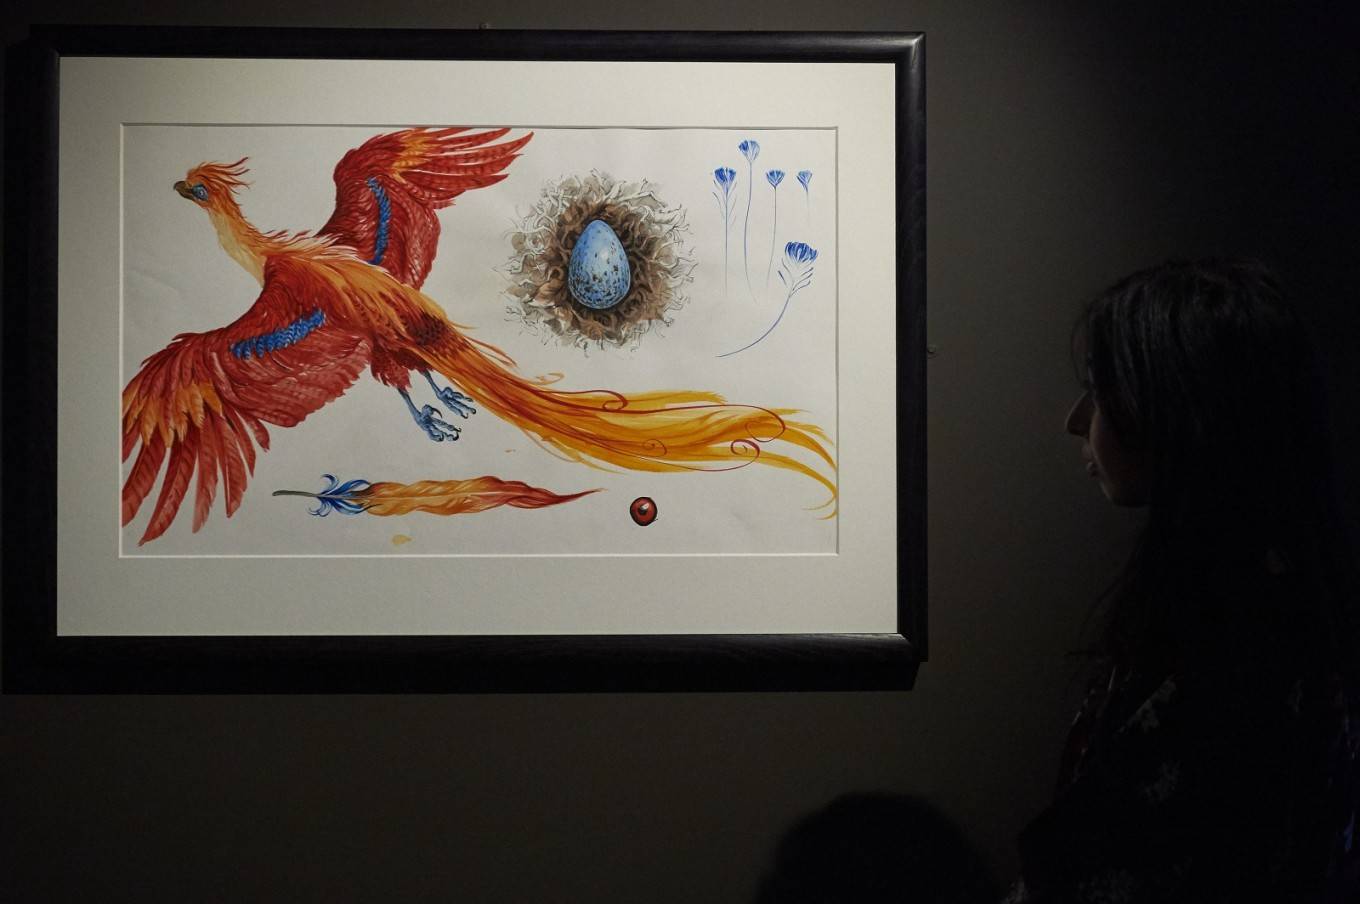 An exhibition curator stands next to an illustration of Fawkes the Phoenix.